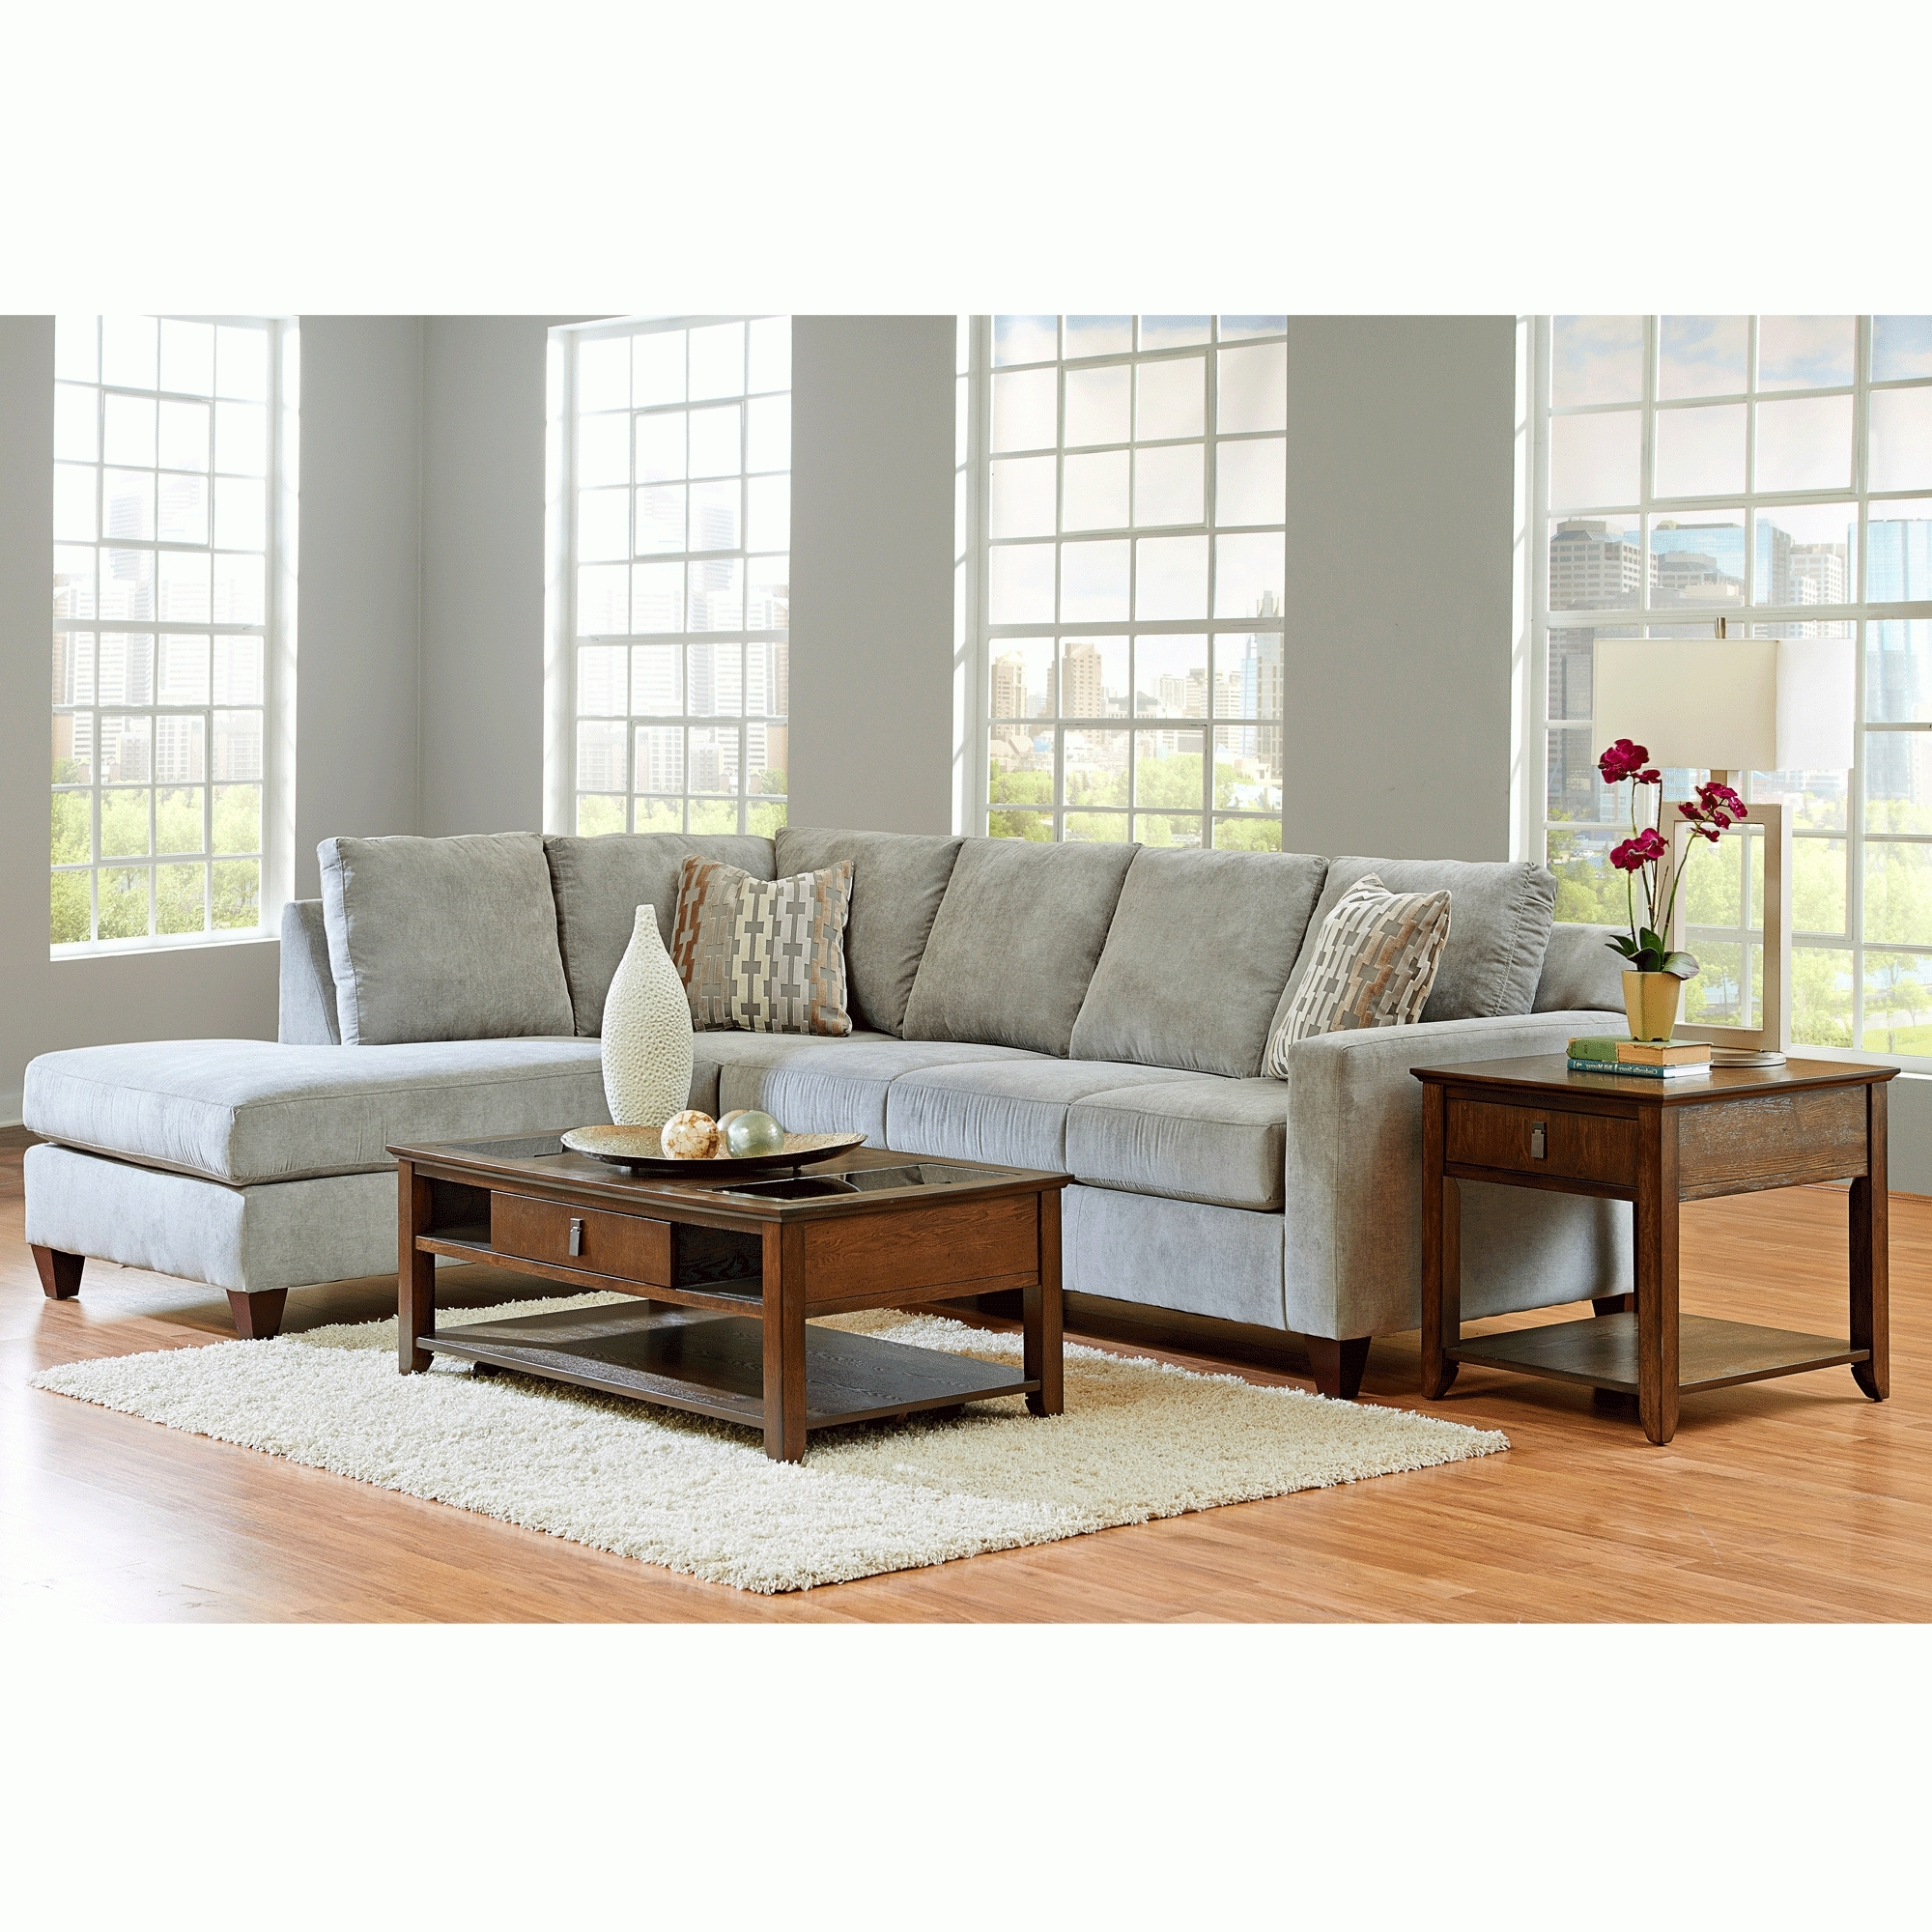 Sectional Couches – Bernie & Phyl's Furniture (View 14 of 15)